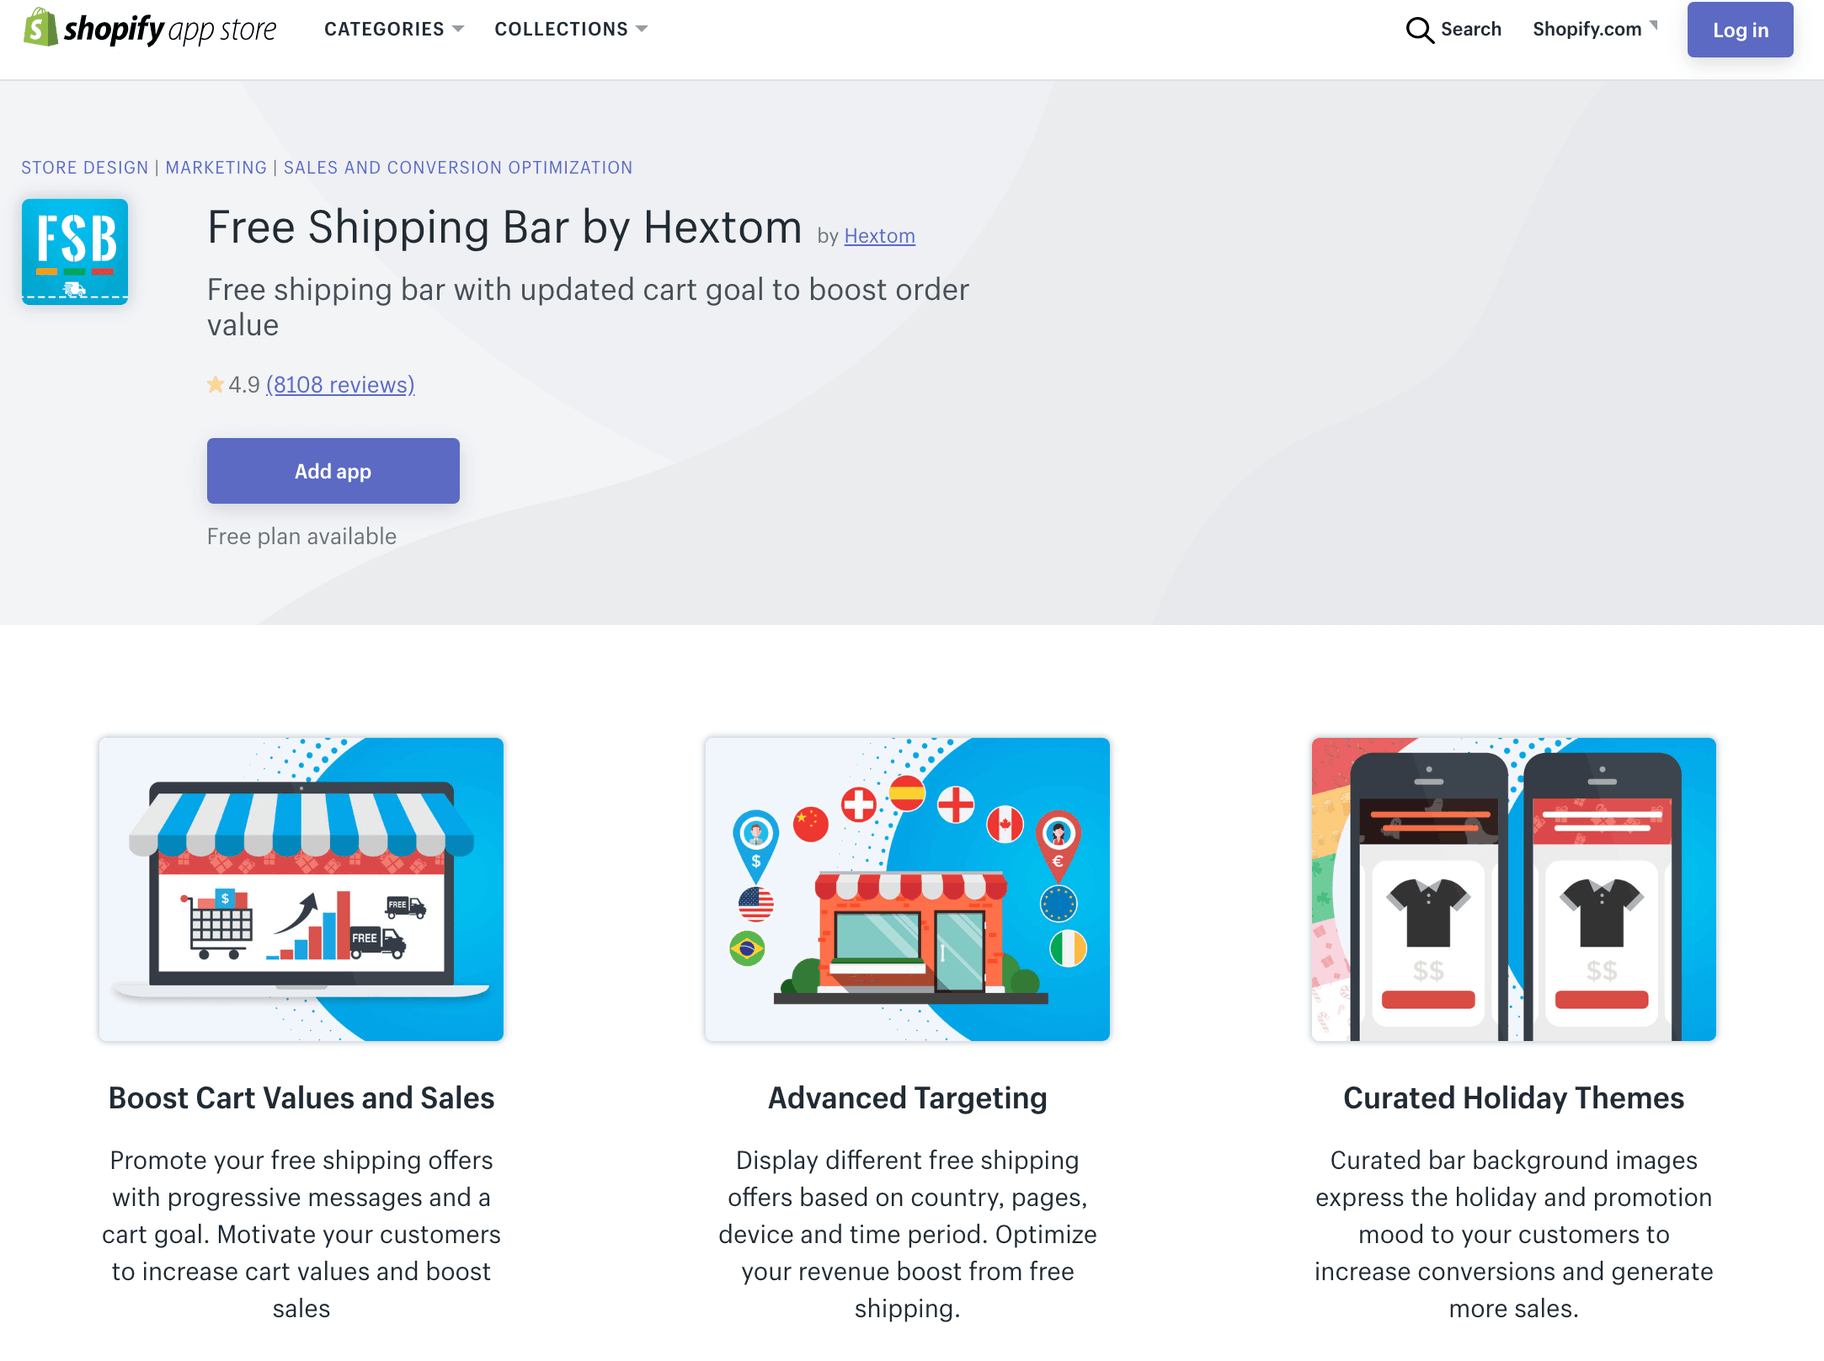 Free Shipping Bar by Hextom